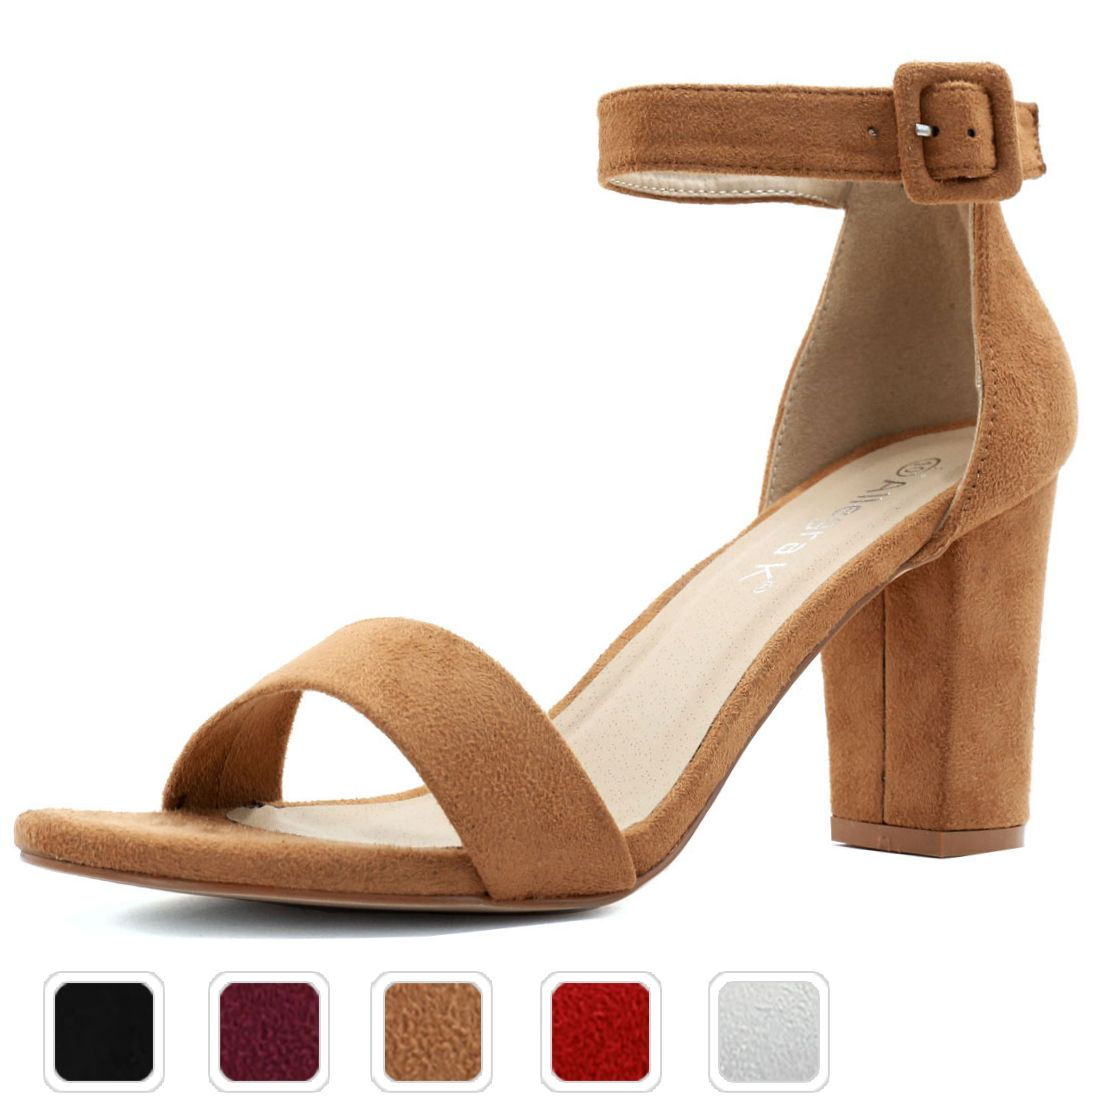 352f6767b020 Free Shipping. Buy Unique Bargains Women s Ankle Strap Open Toe Chunky High  Heel Sandals at Walmart.com